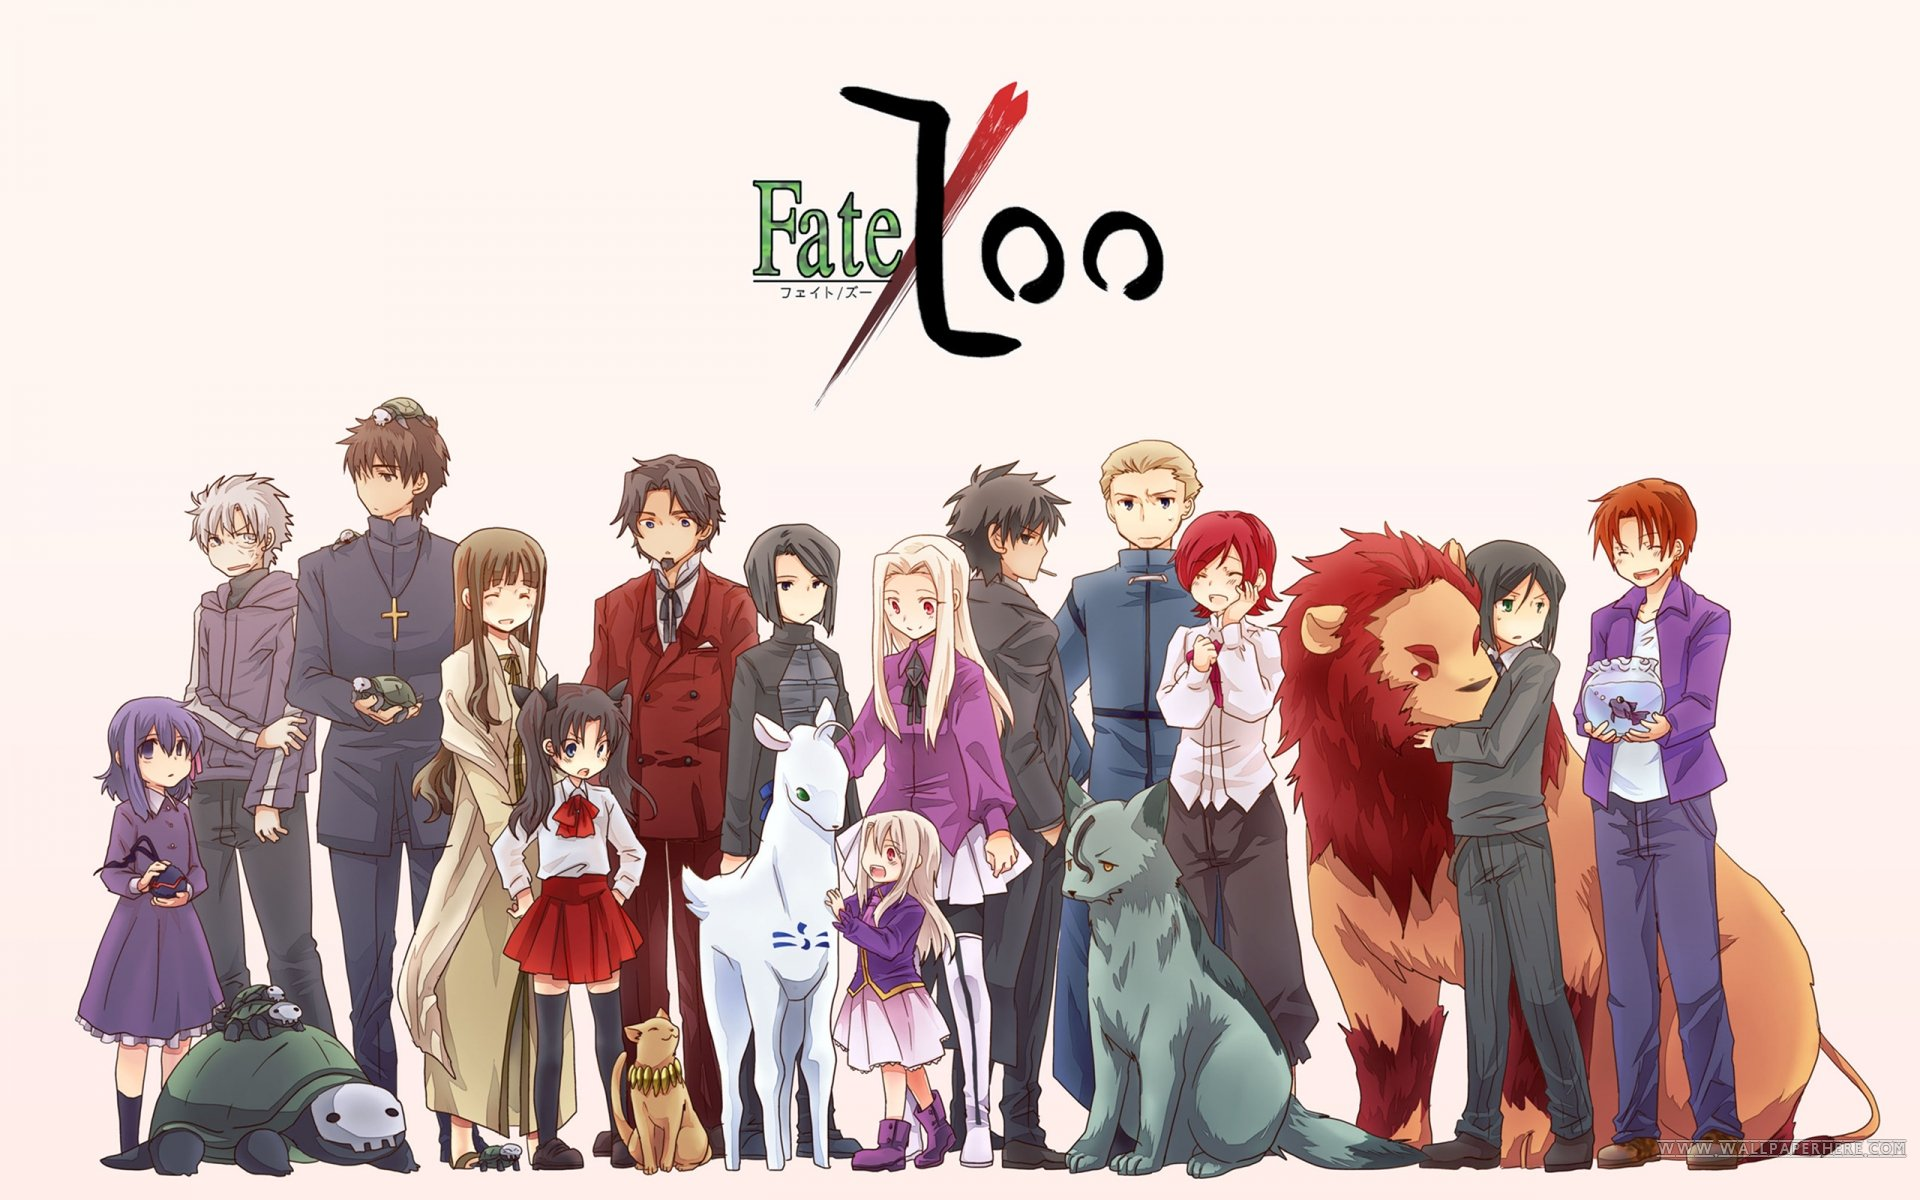 1920x1200 FateZero HD Wallpaper Wallpaper Download 1920x1200